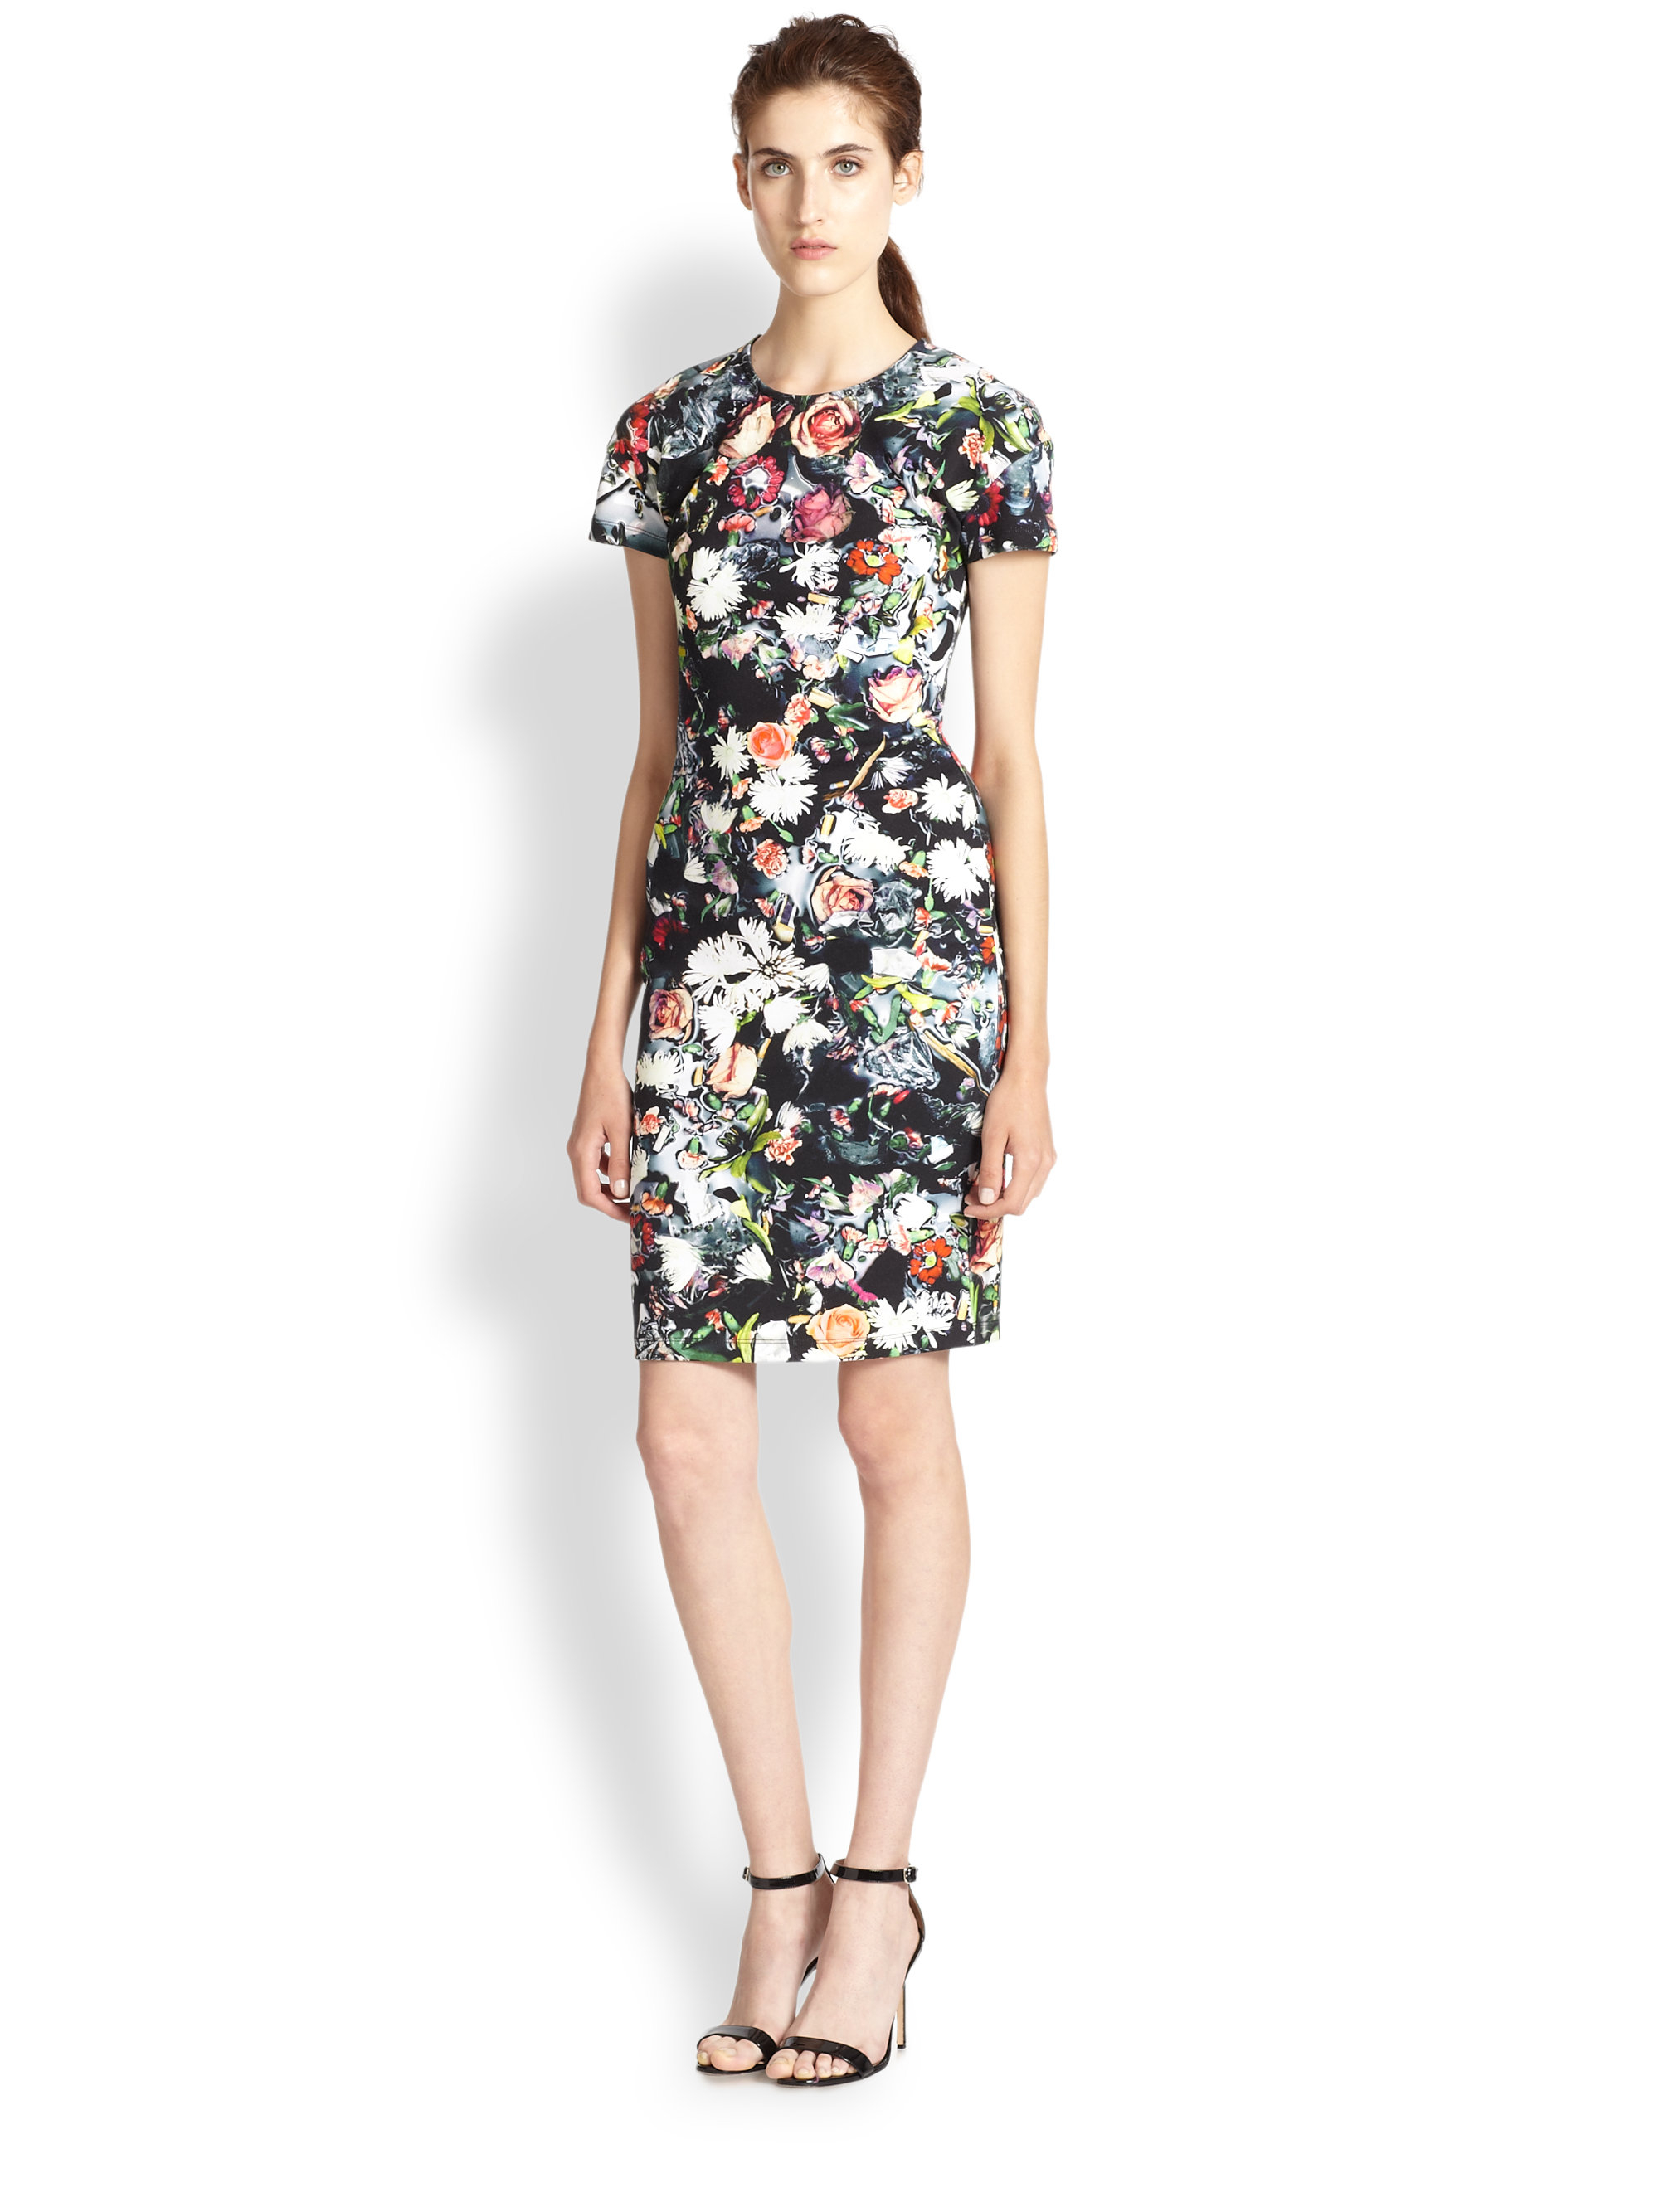 Get the best deals on cotton floral dresses and save up to 70% off at Poshmark now! Whatever you're shopping for, we've got it.